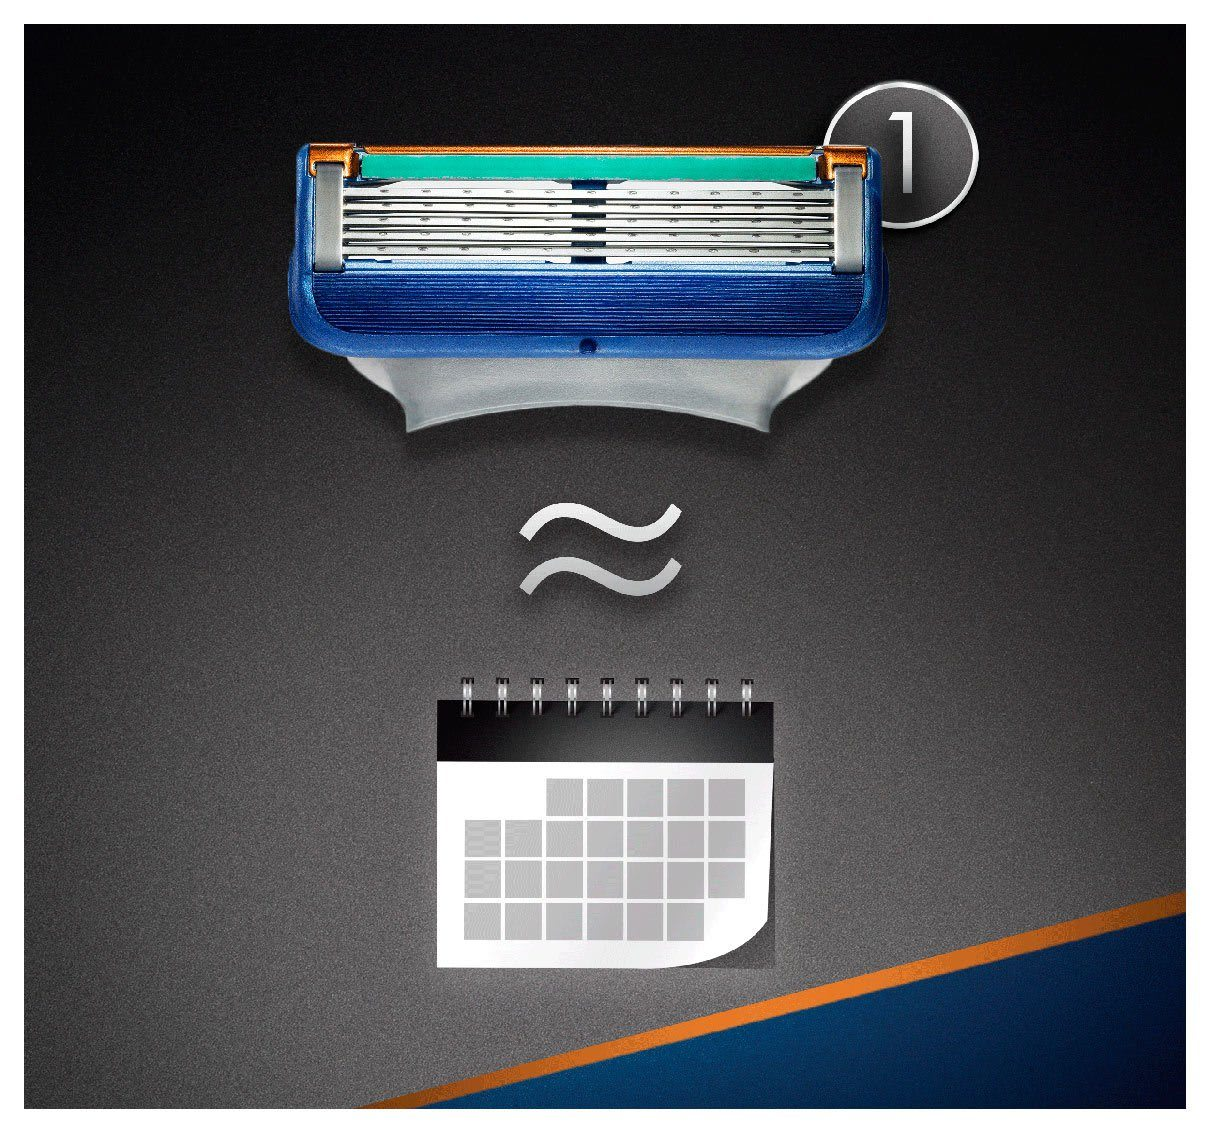 07_Fusion_Manual_Razor_Desktop